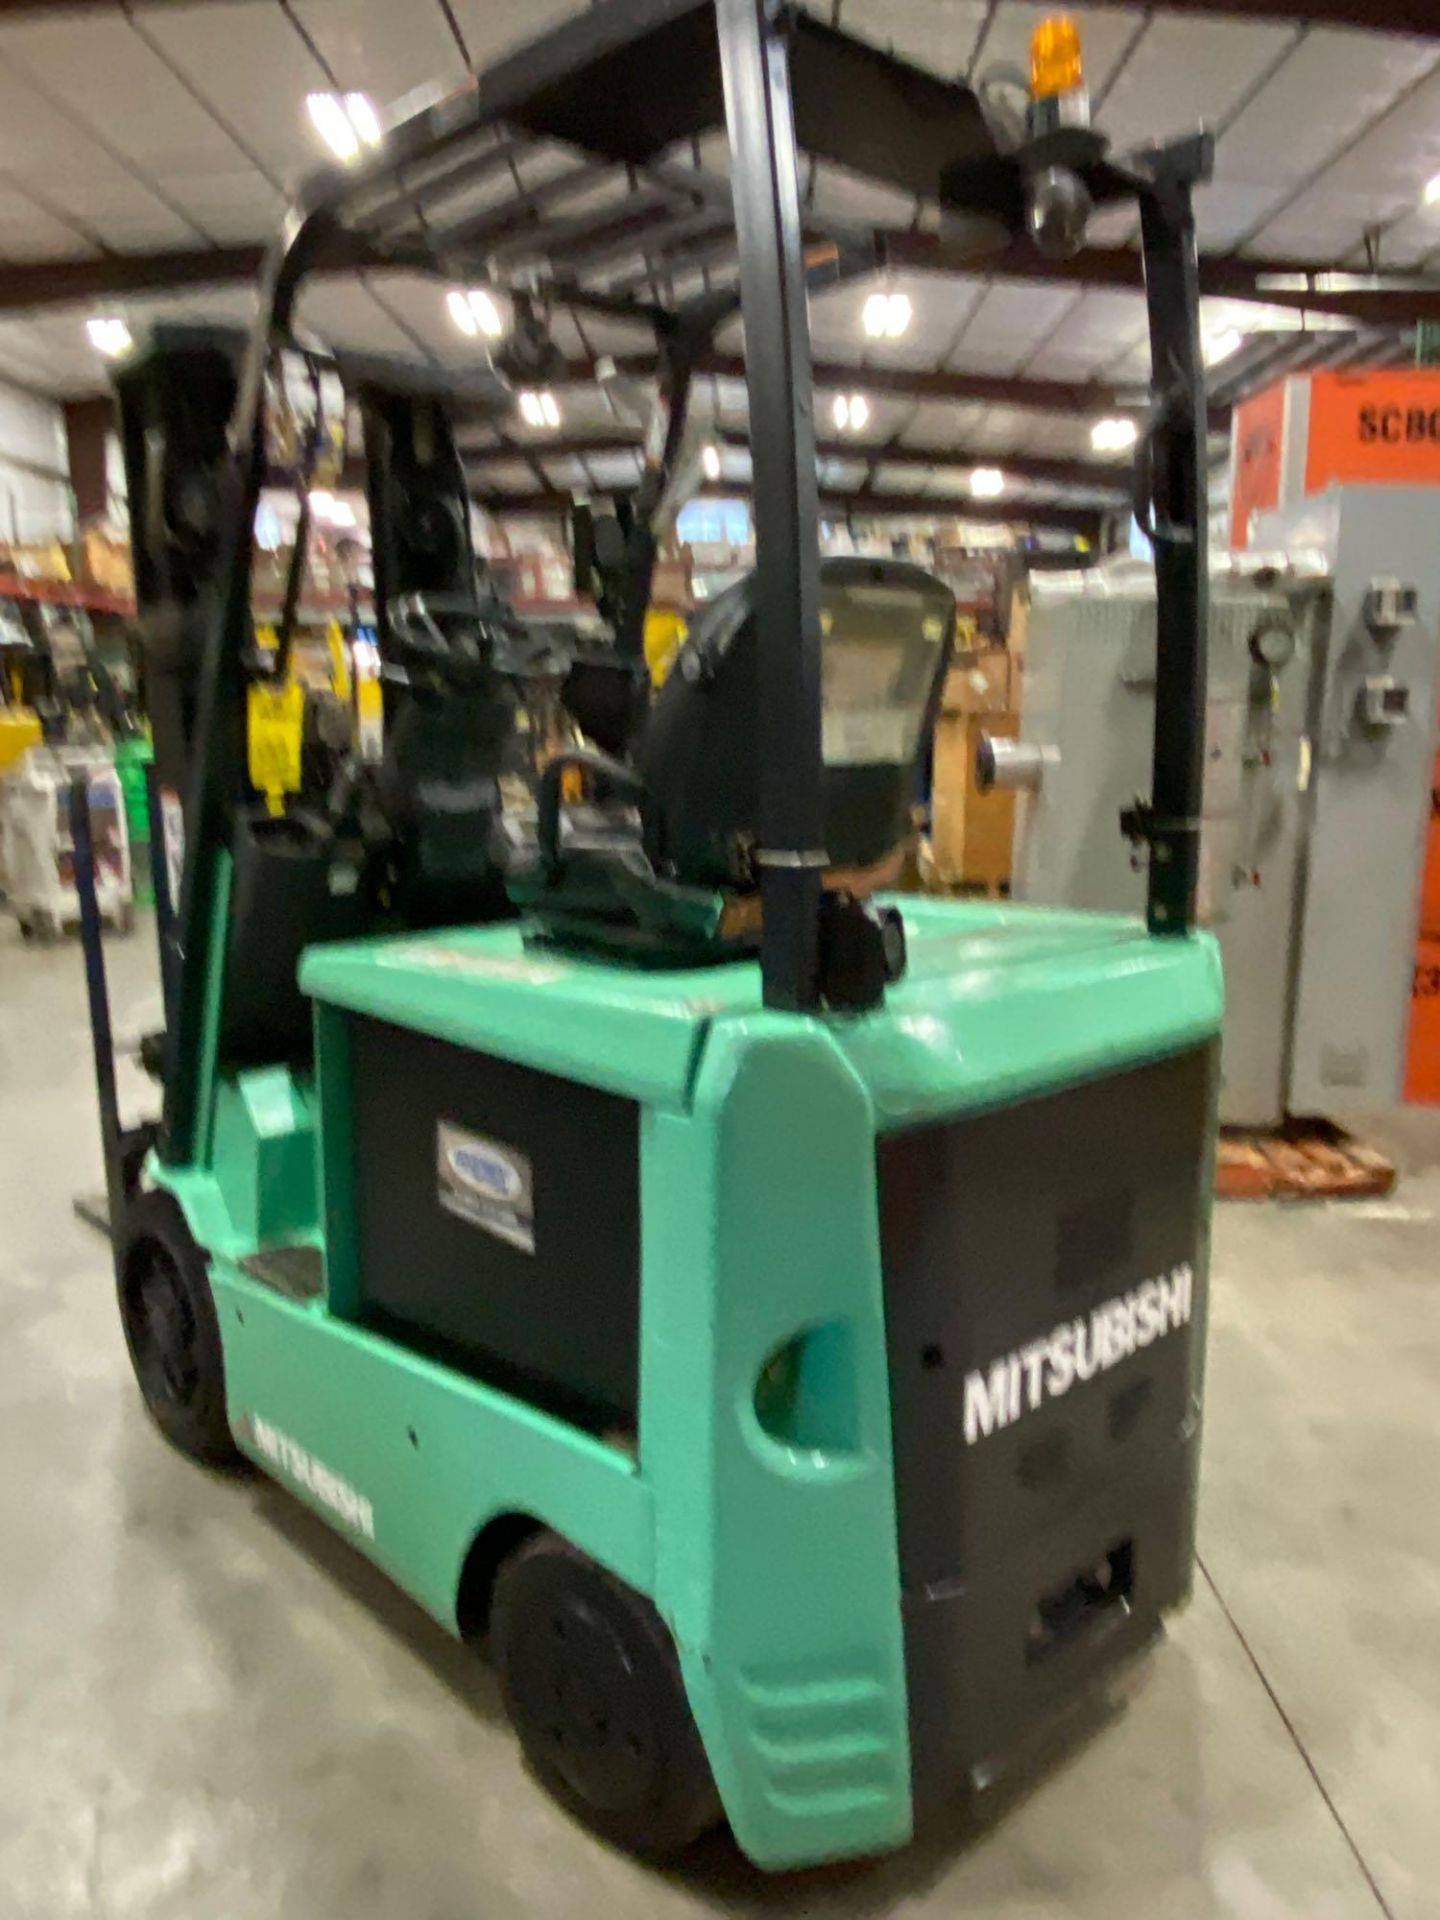 "2015 MITSUBISHI FBC25N2 36V FORKLIFT, APPROX 4500LB CAPACITY, TILT, SIDESHIFT, LIFT 188"" MAX HEIGHT, - Image 8 of 20"